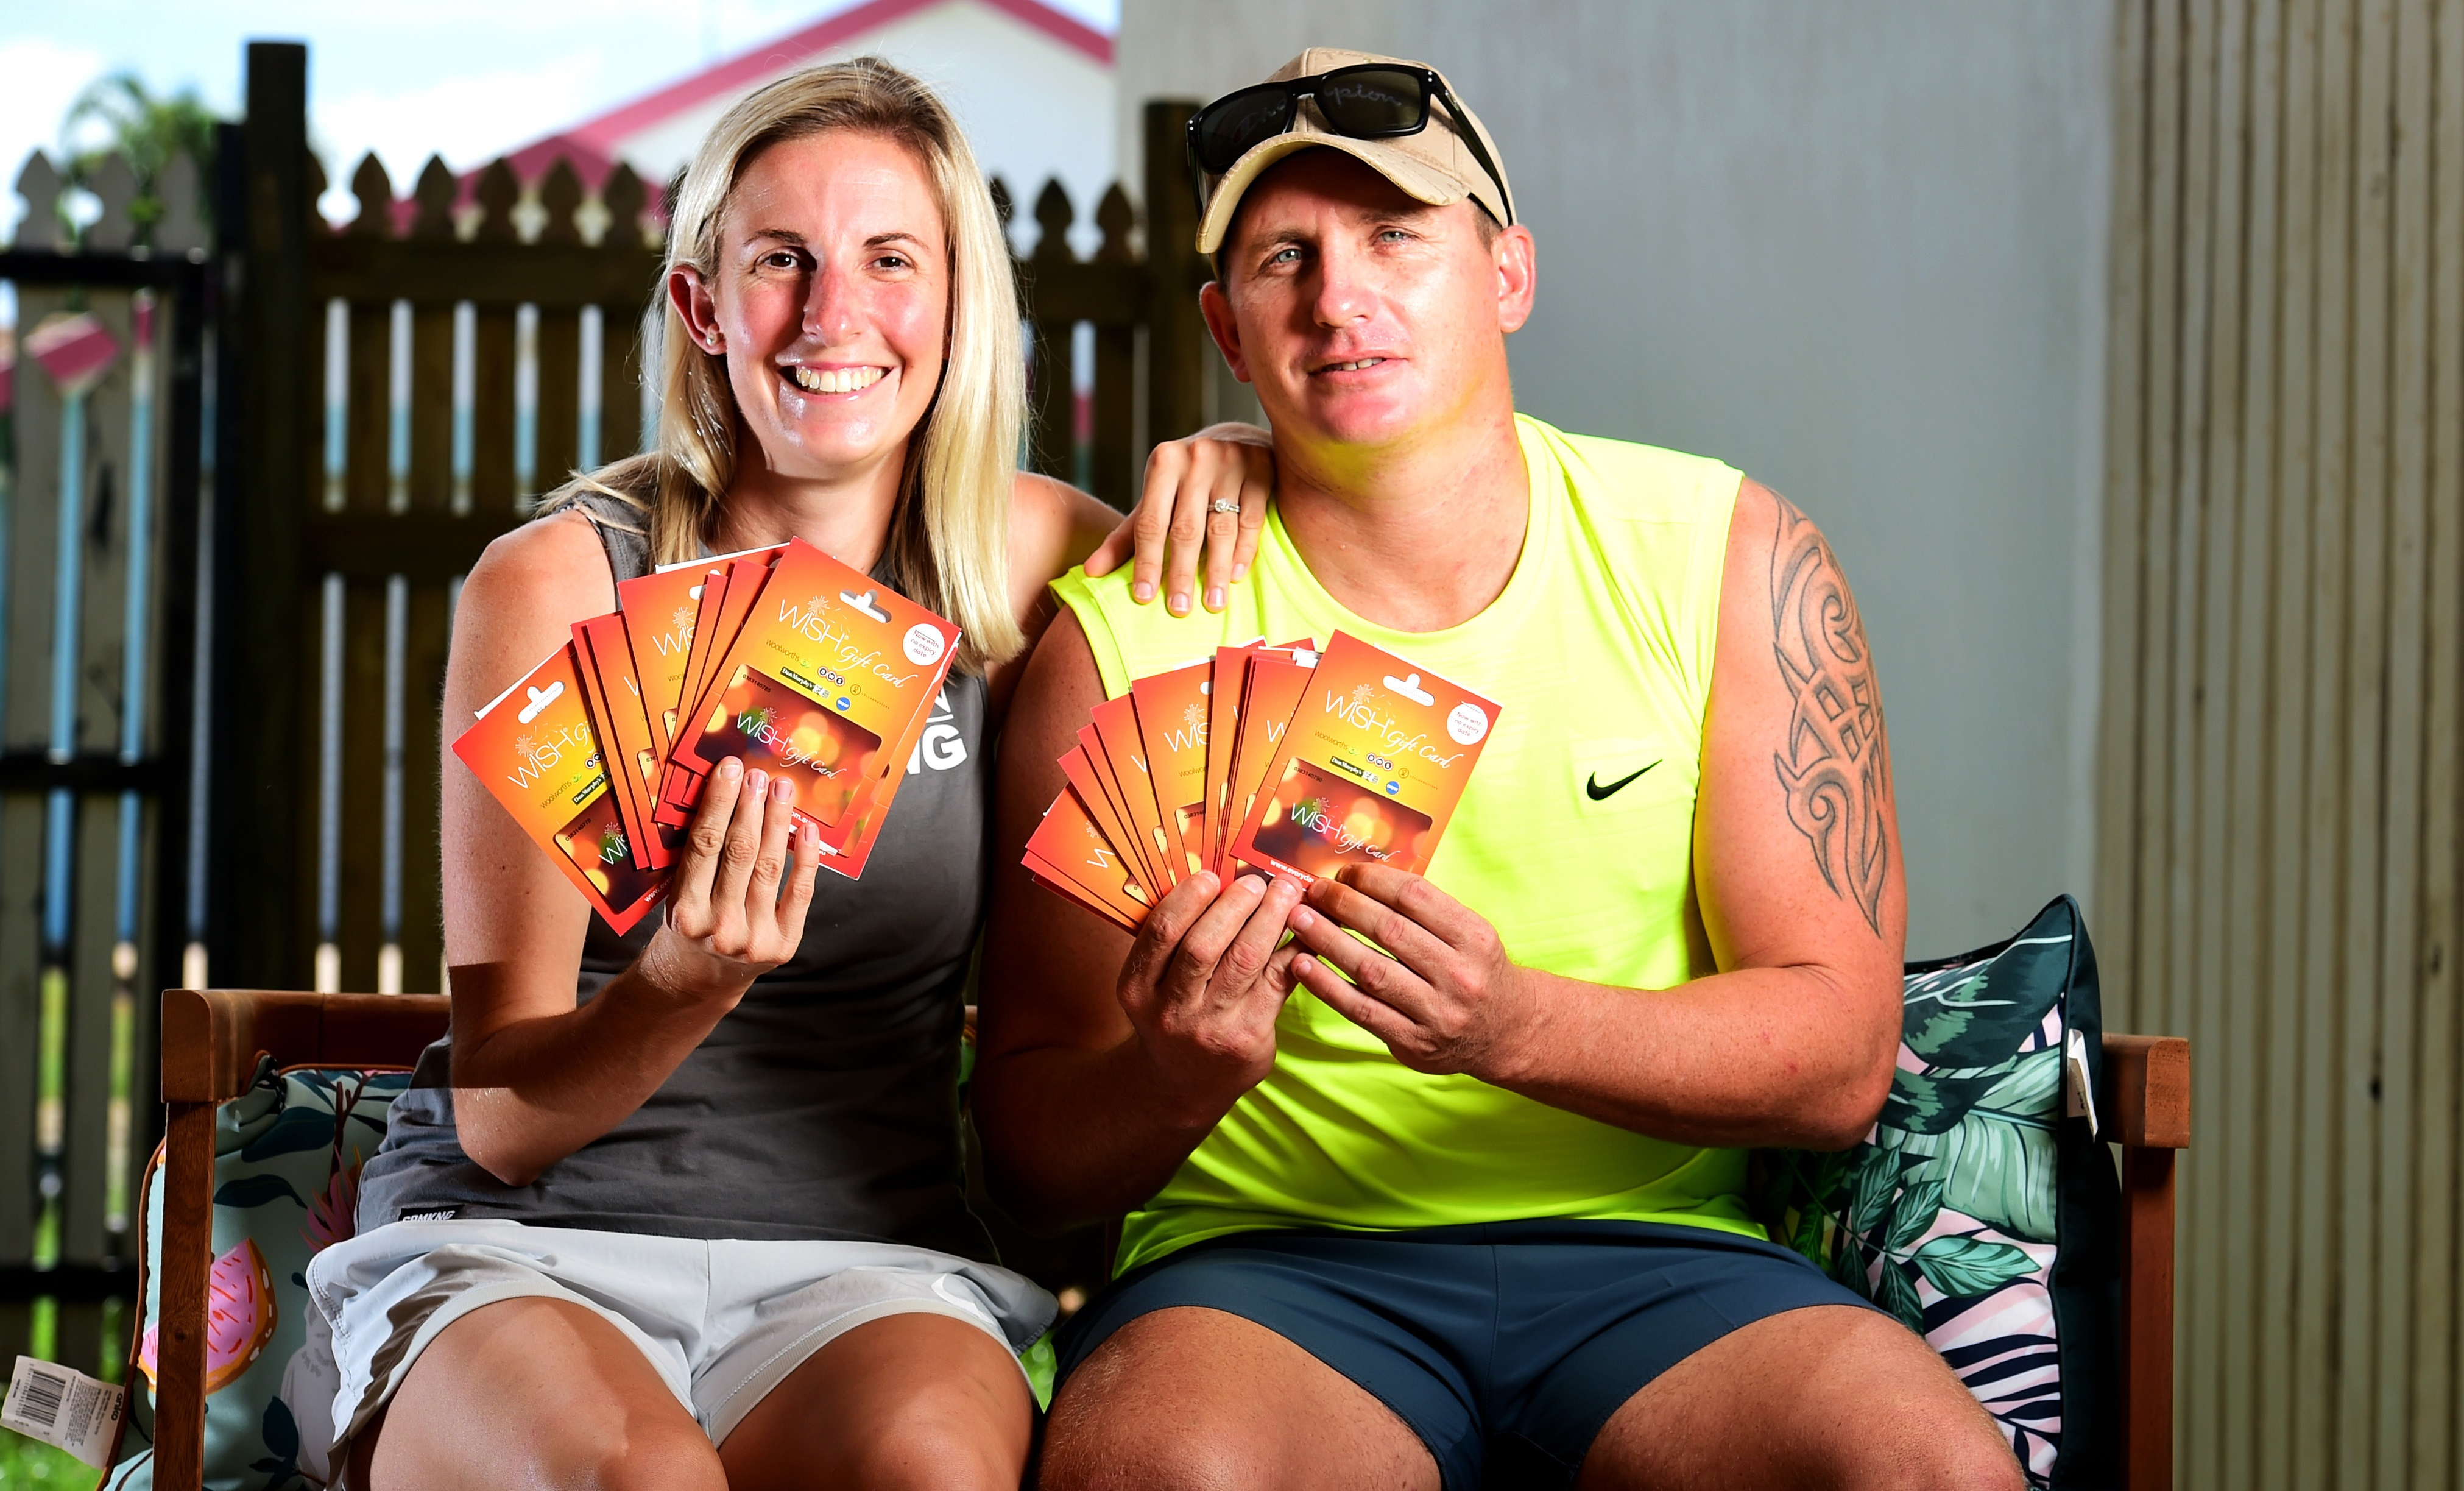 Beau King and Stacey Lyon, sitting down in casual, light clothing. Both are holding fistfuls of supermarket gift cards.